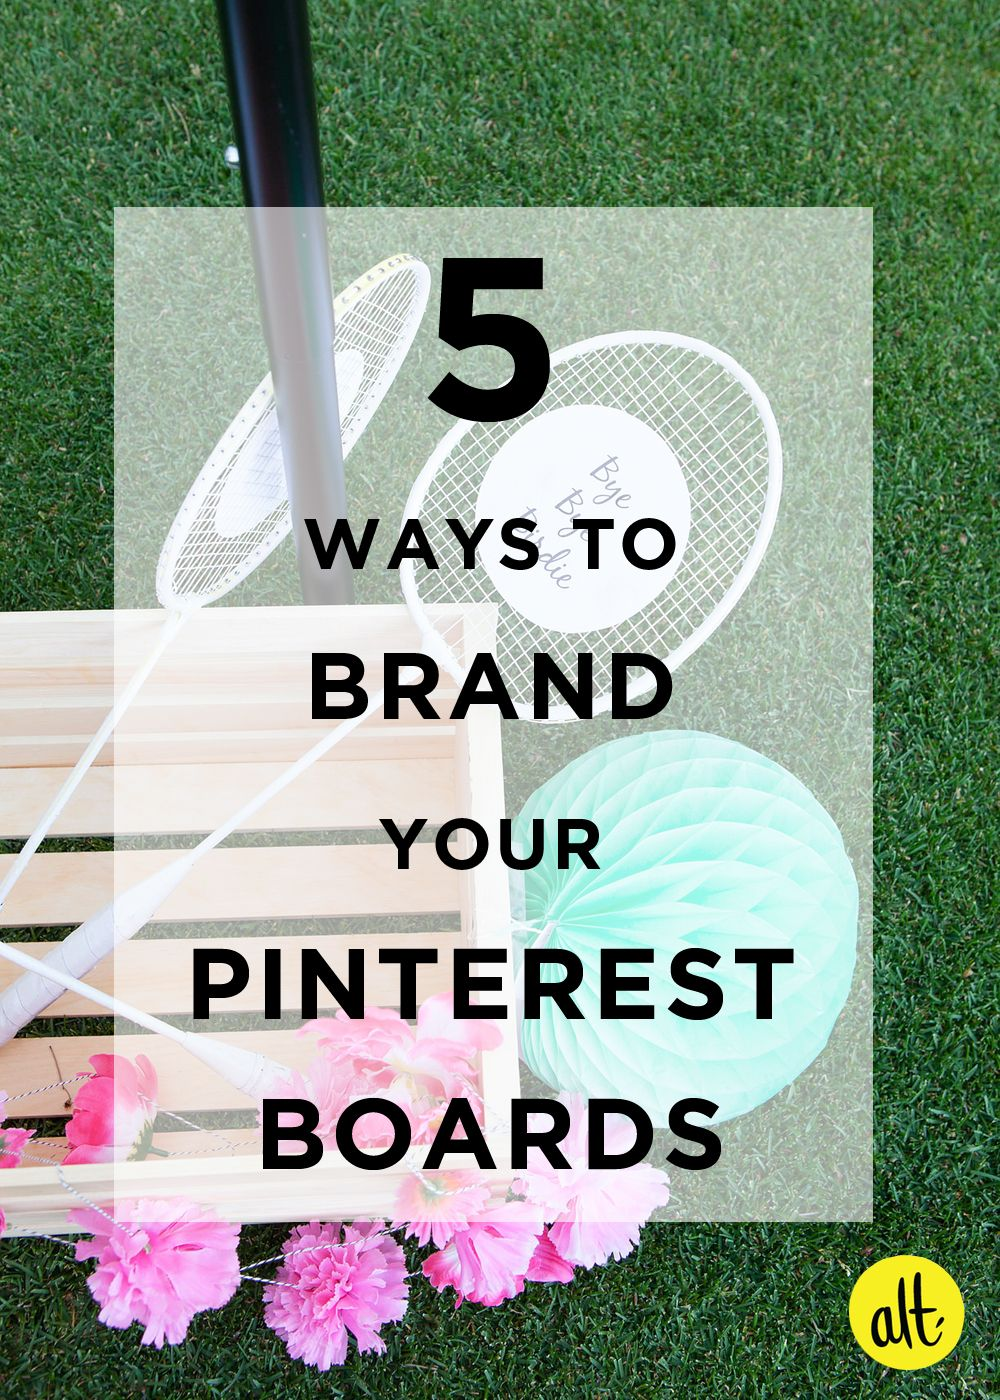 have you evaluated your Pinterest feed lately? 5 ways to best brand your Pinterest boards.